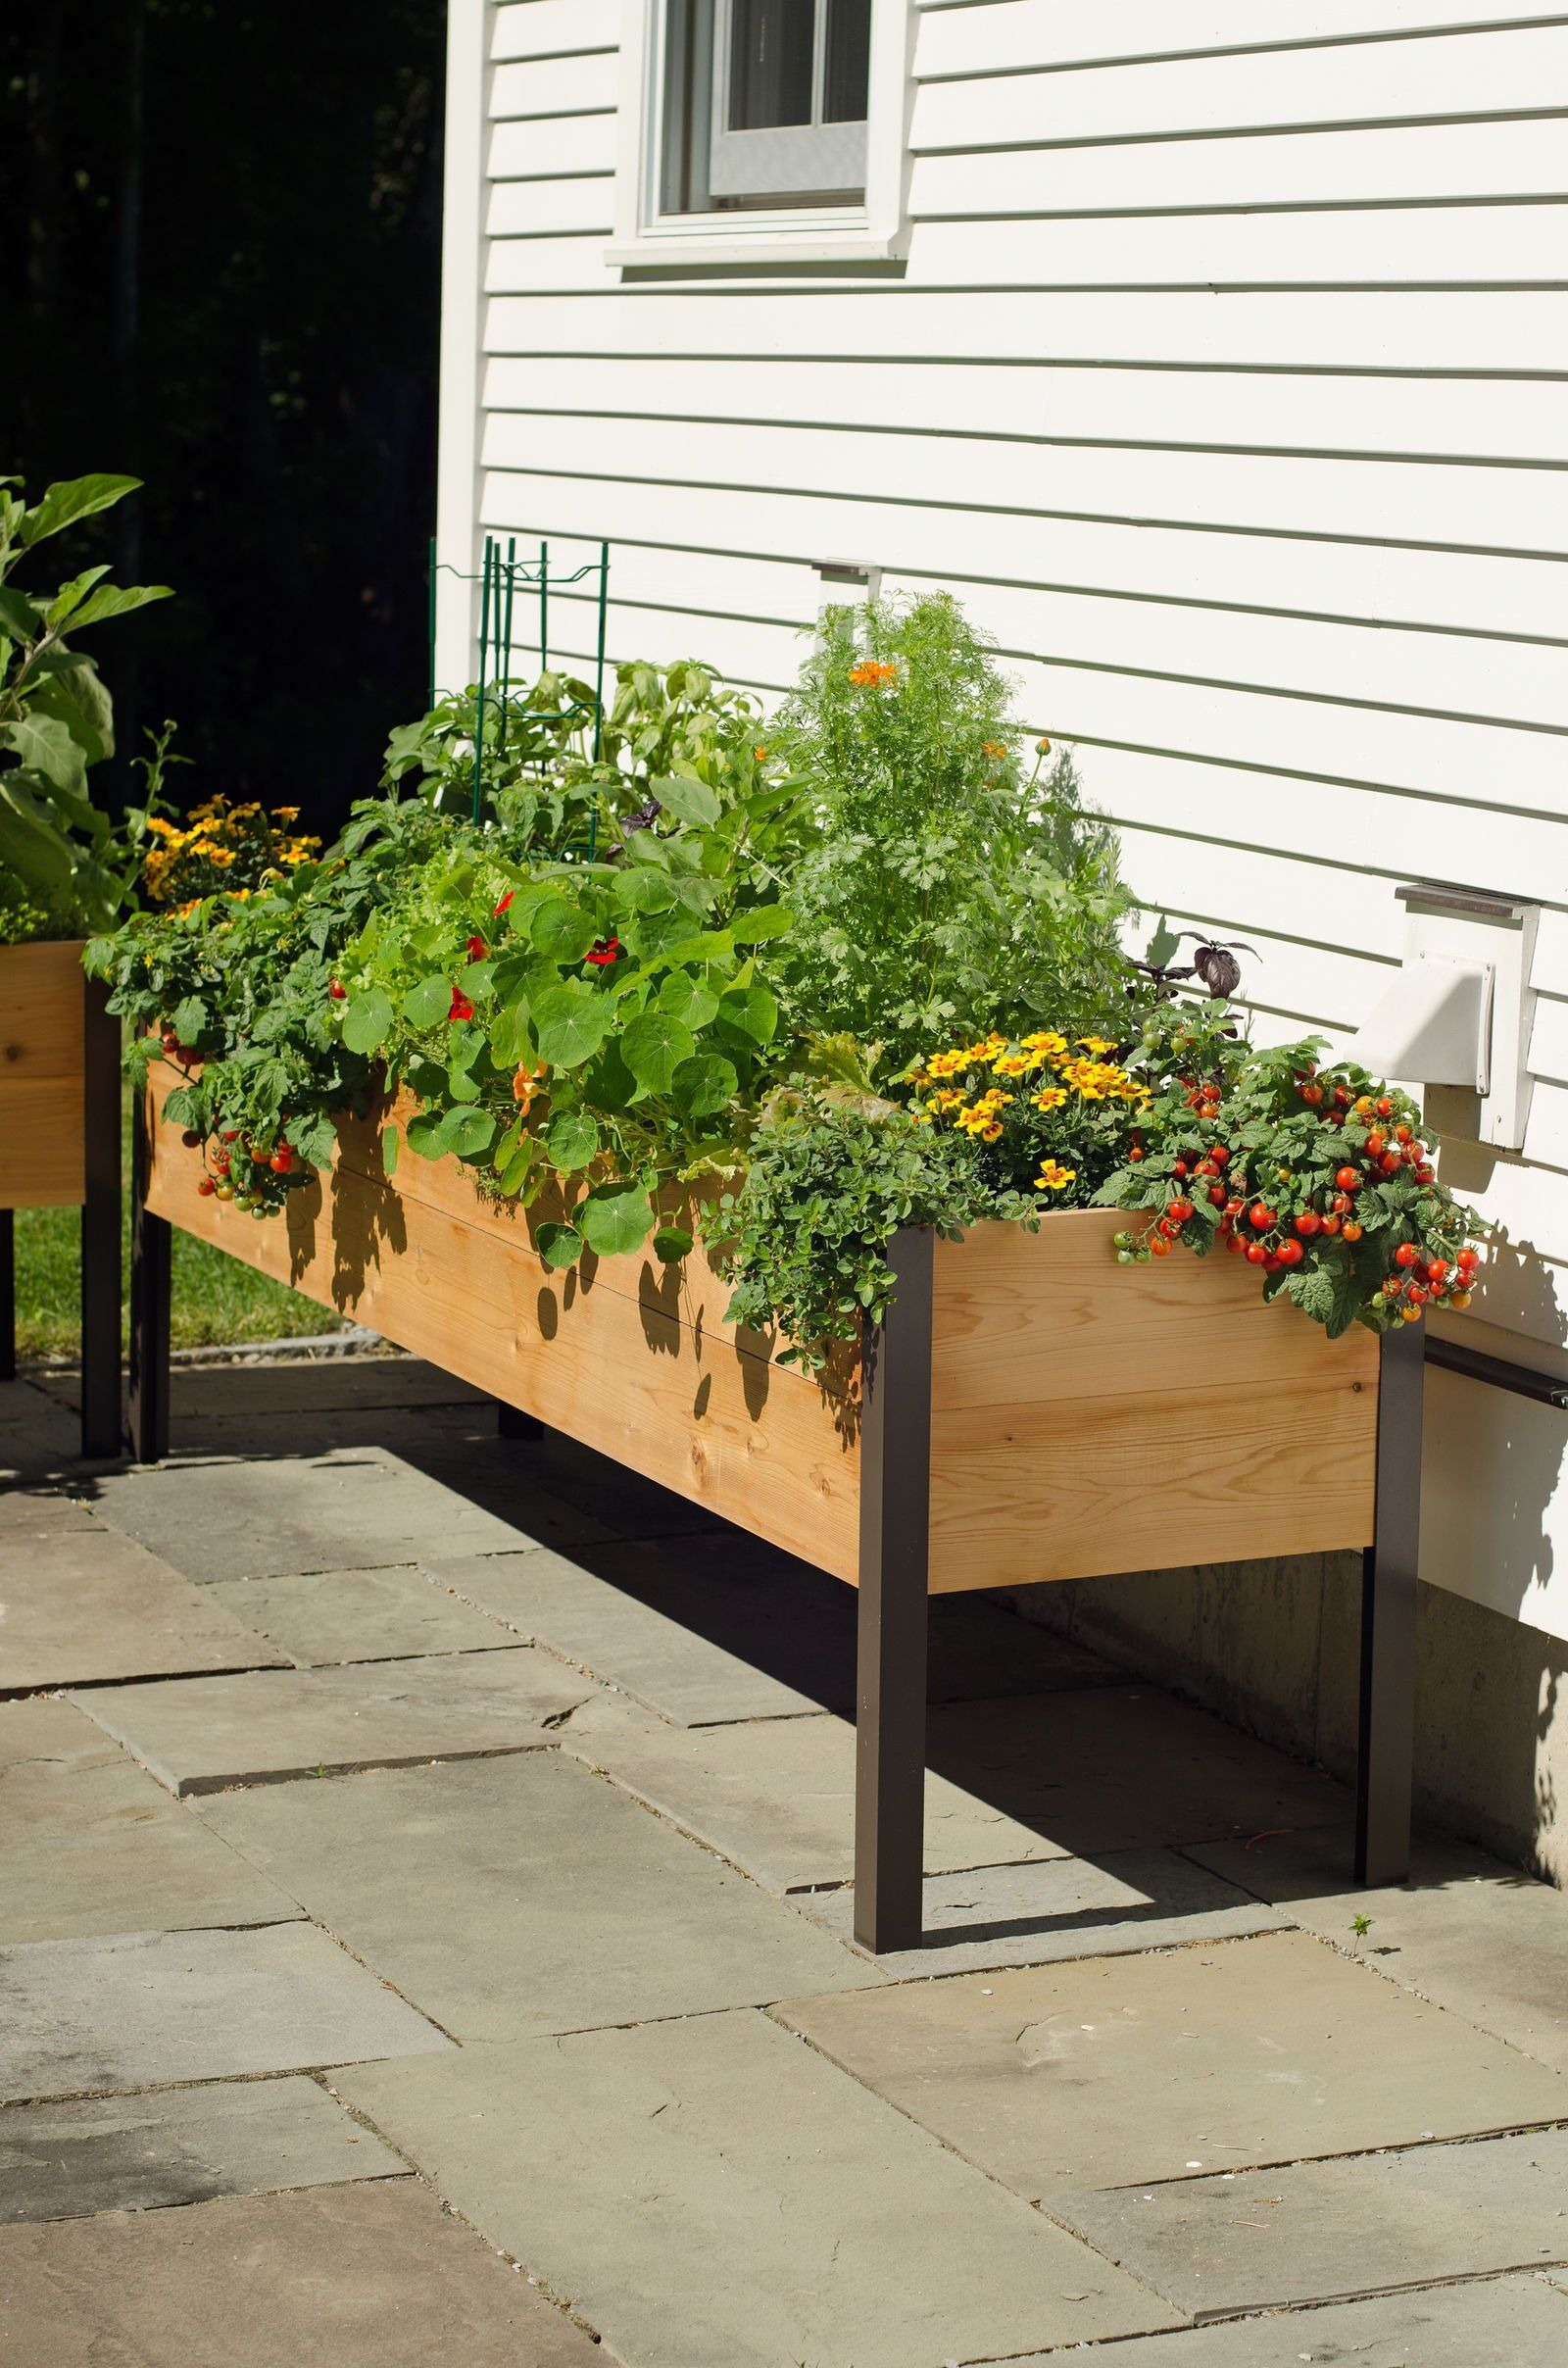 Amazon Garden Pots And Planters Amazon 2 39 X 8 39 Elevated Cedar Planter Box Raised